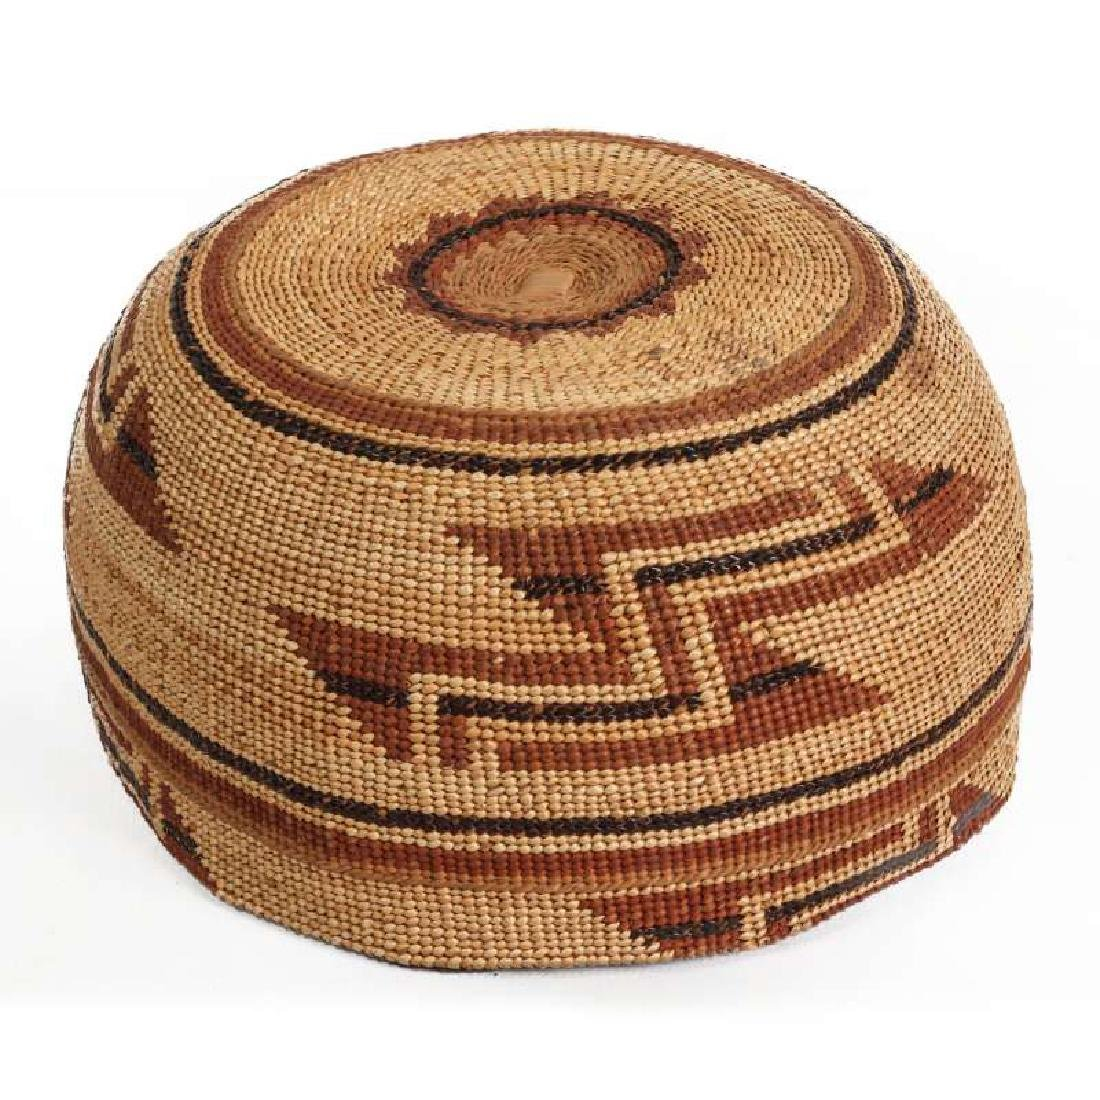 A FINE HUPA INDIAN BASKETRY HAT